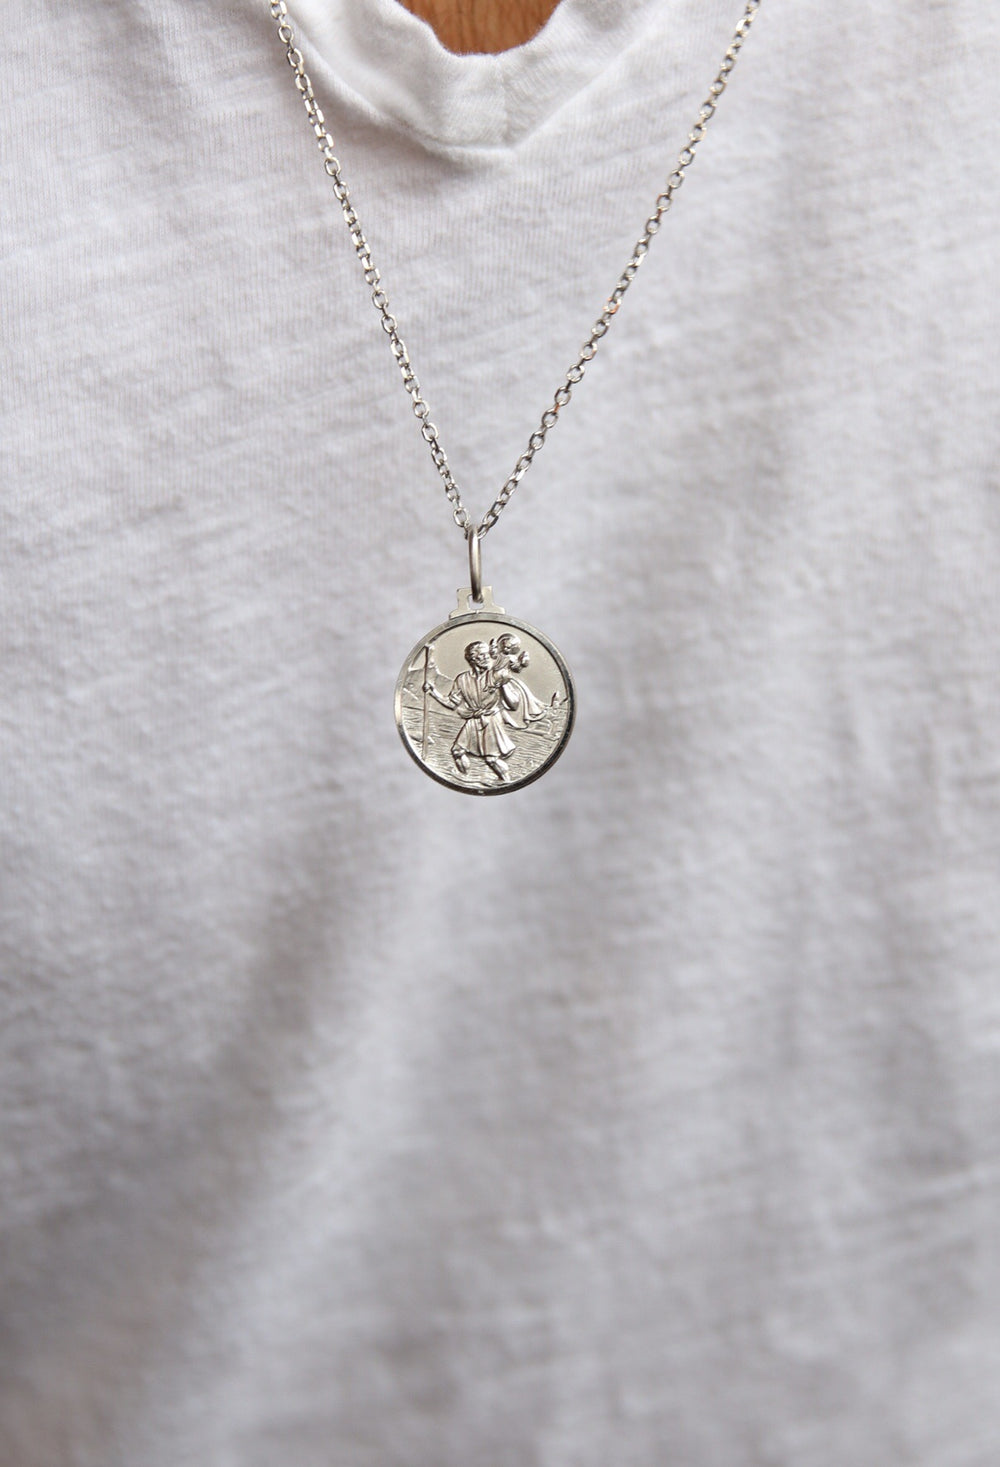 Saint Christopher's Coin (Small)